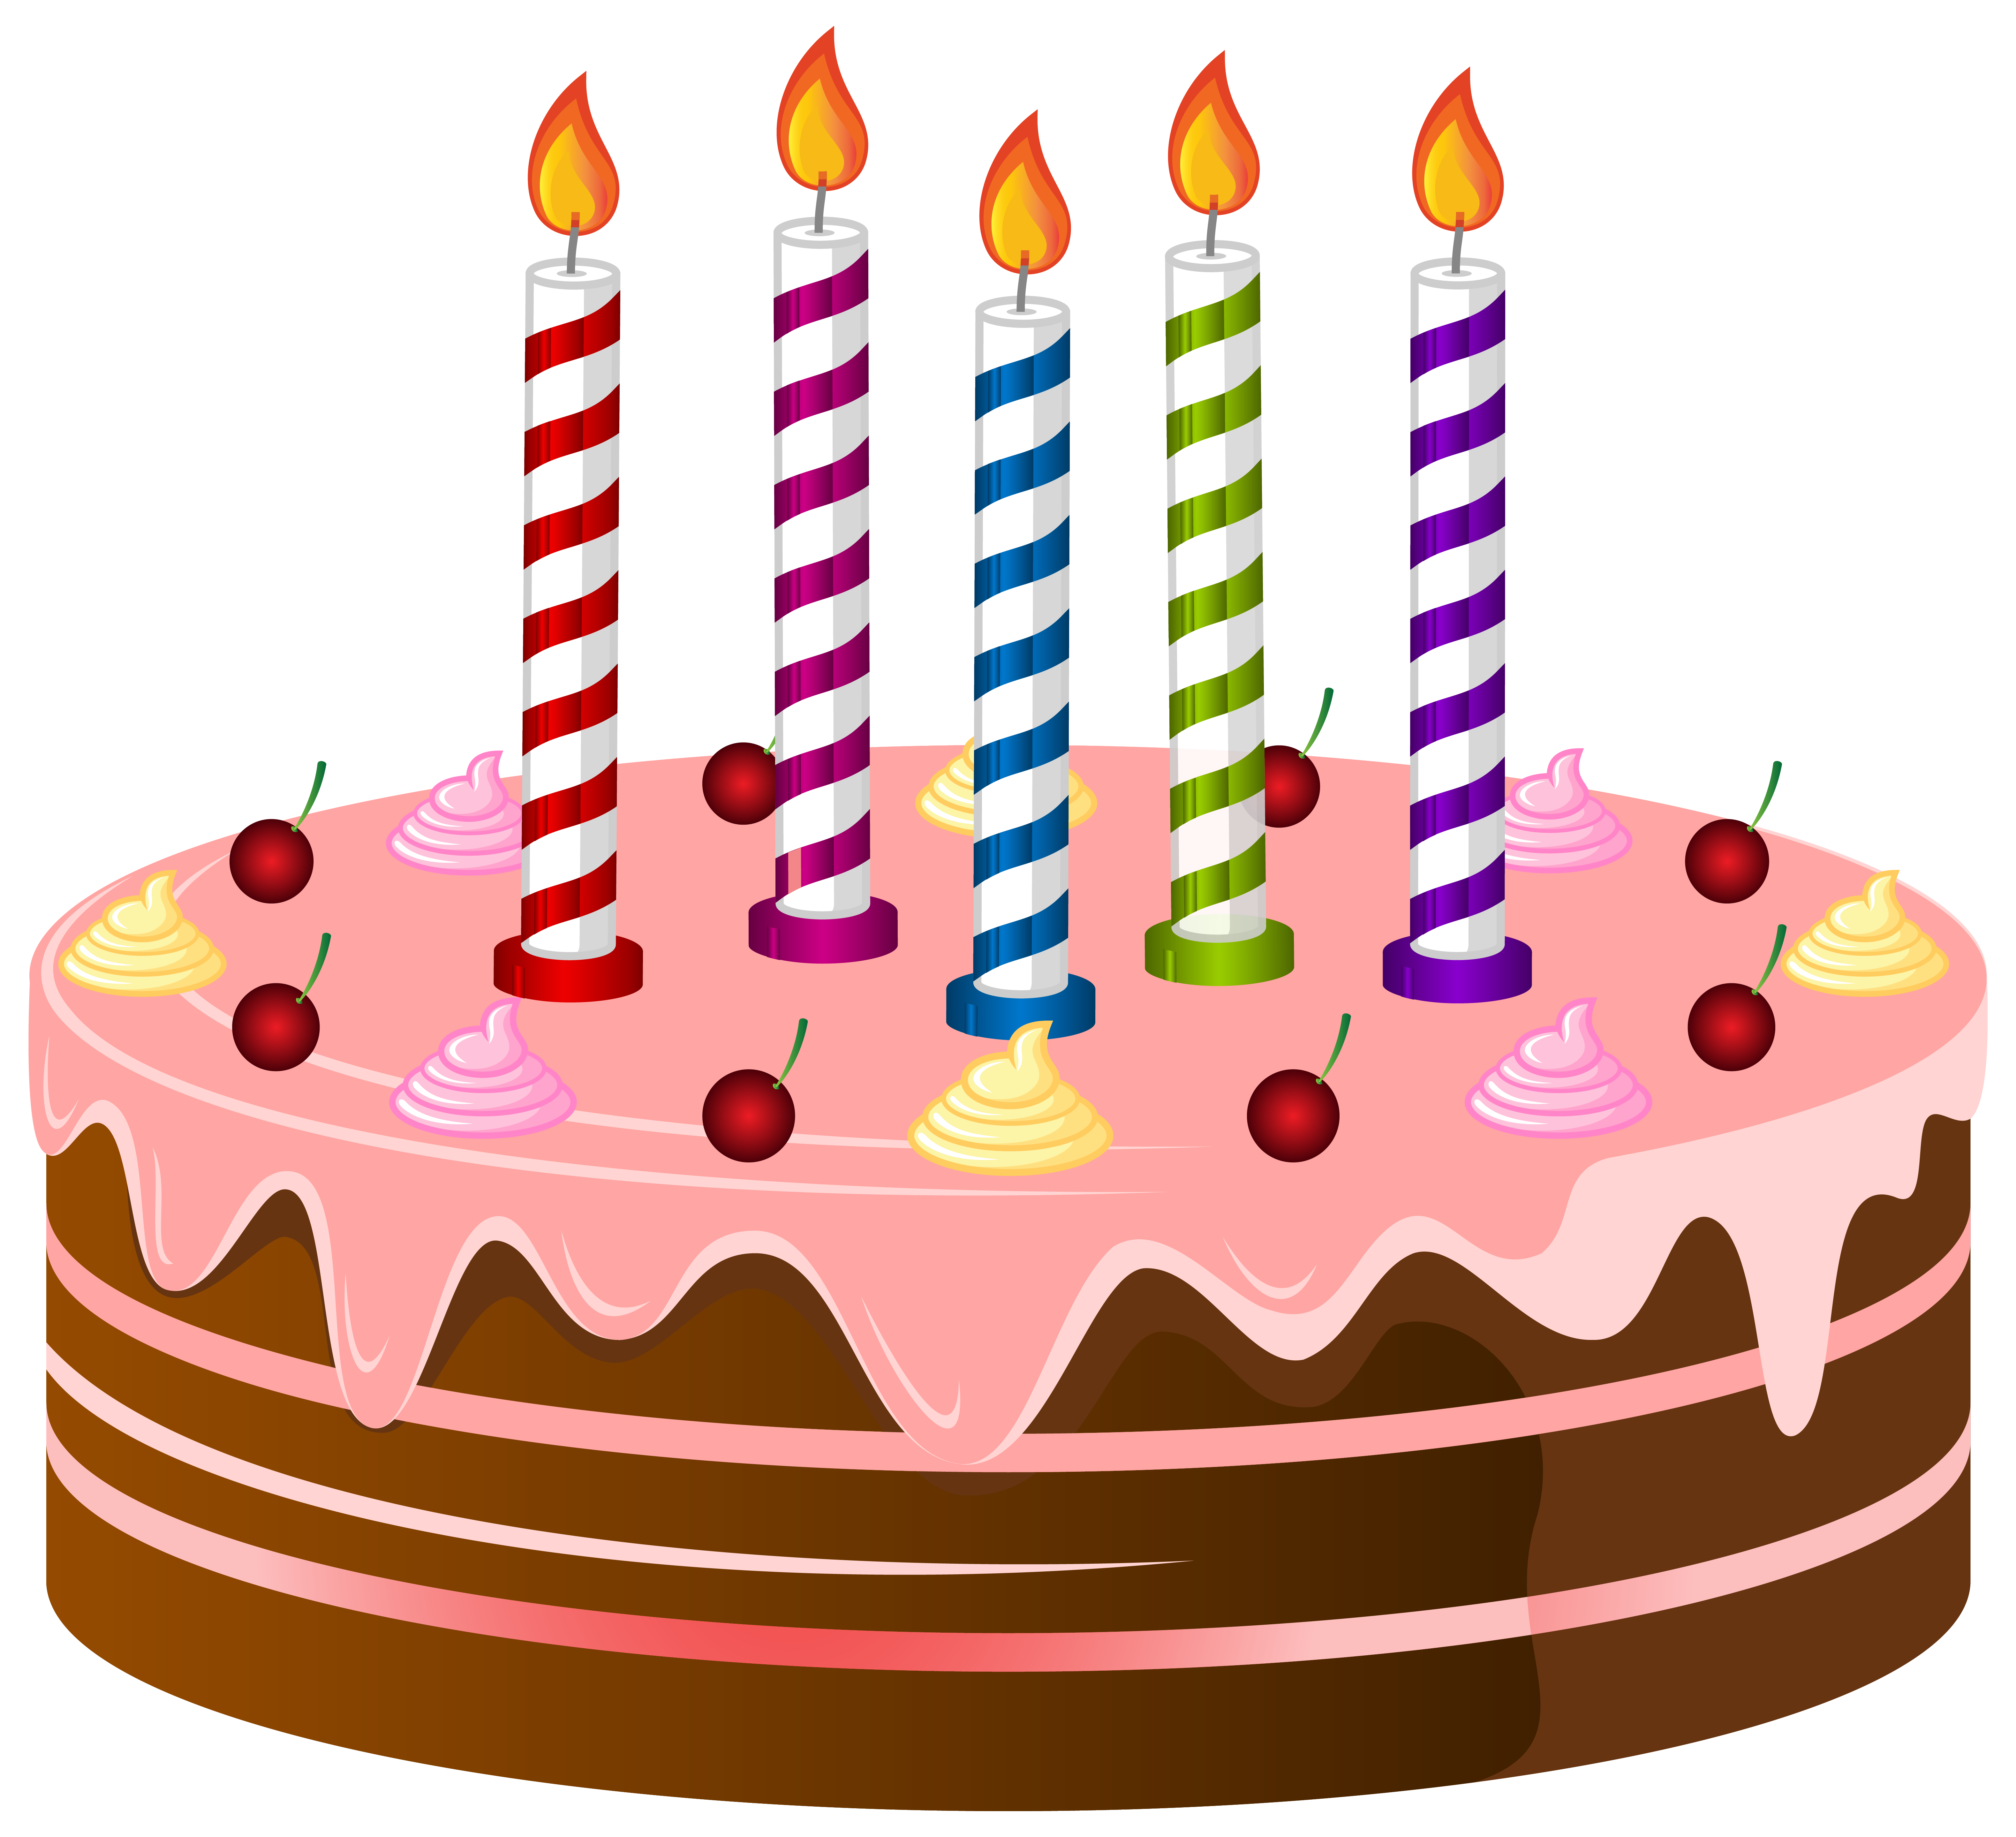 Free birthday cake clip art . - Birthday Cake Clipart